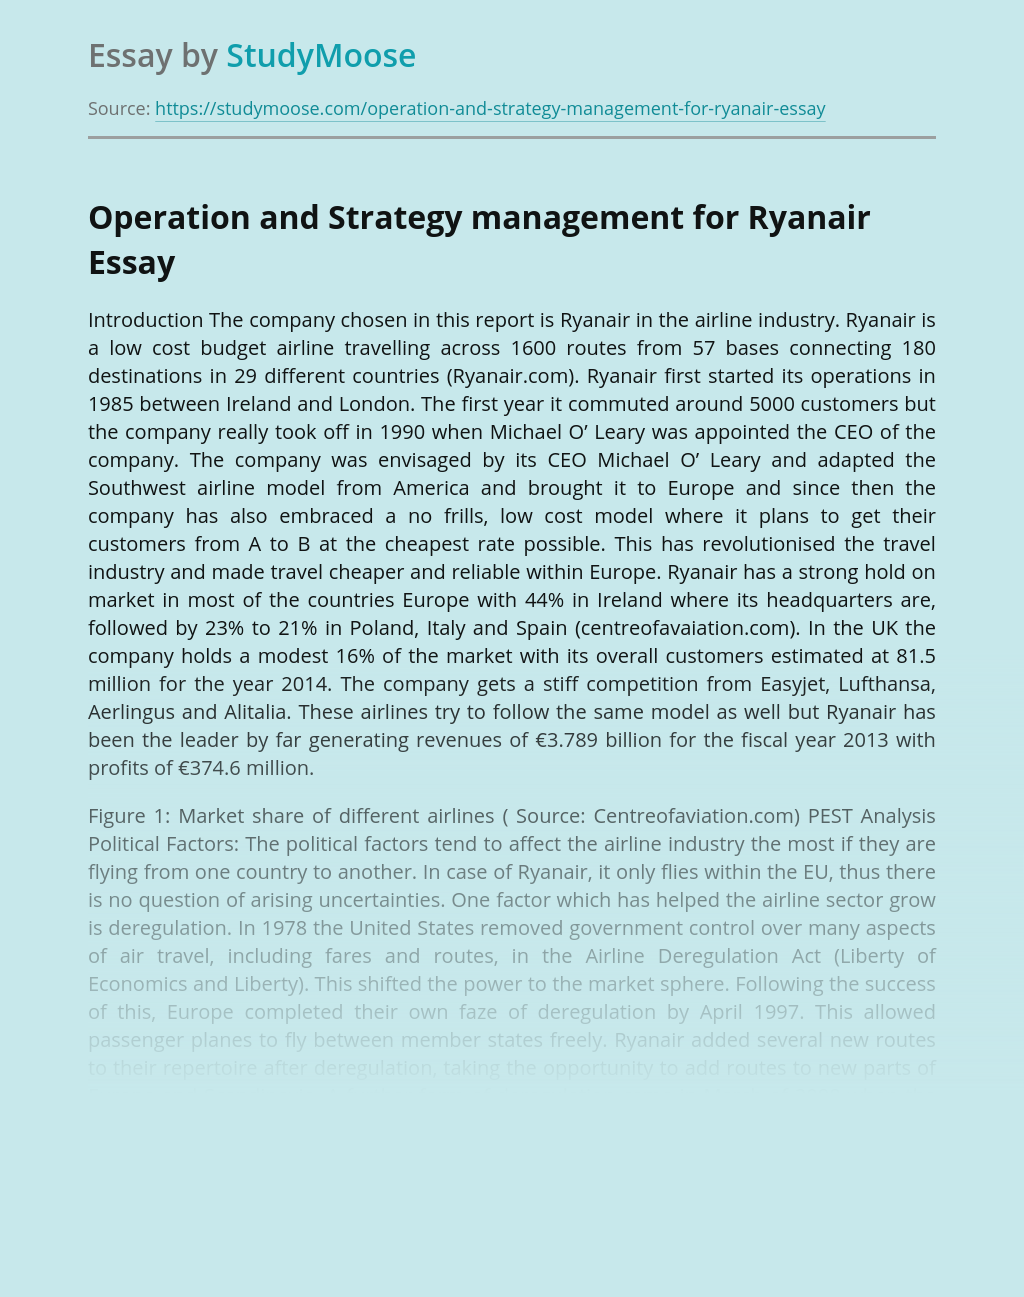 Operation and Strategy management for Ryanair